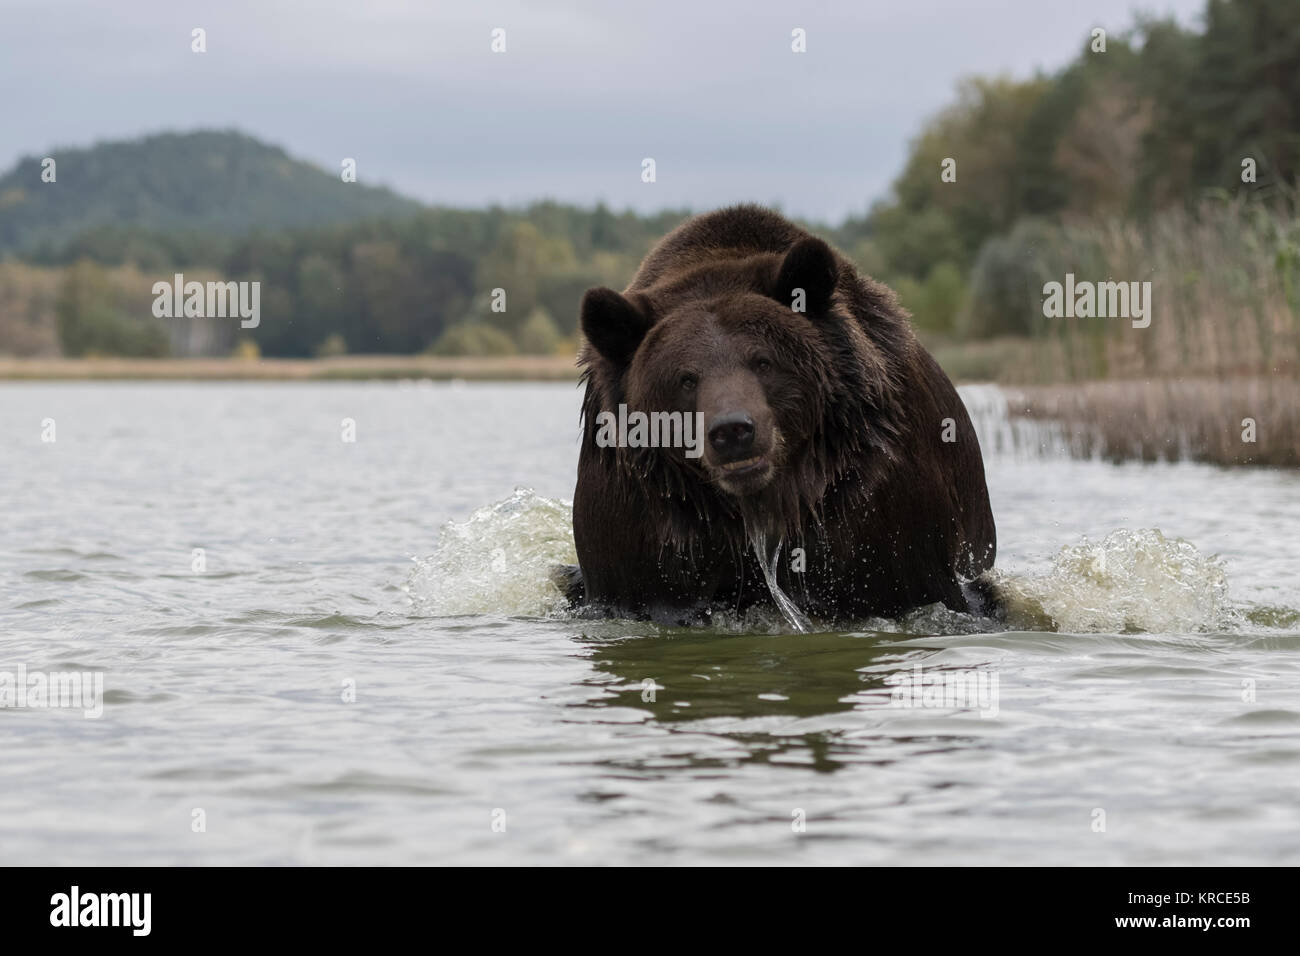 Brown Bear ( Ursus arctos ), powerful adult, running through water of a lake, seems to be agressive, belligerent, - Stock Image